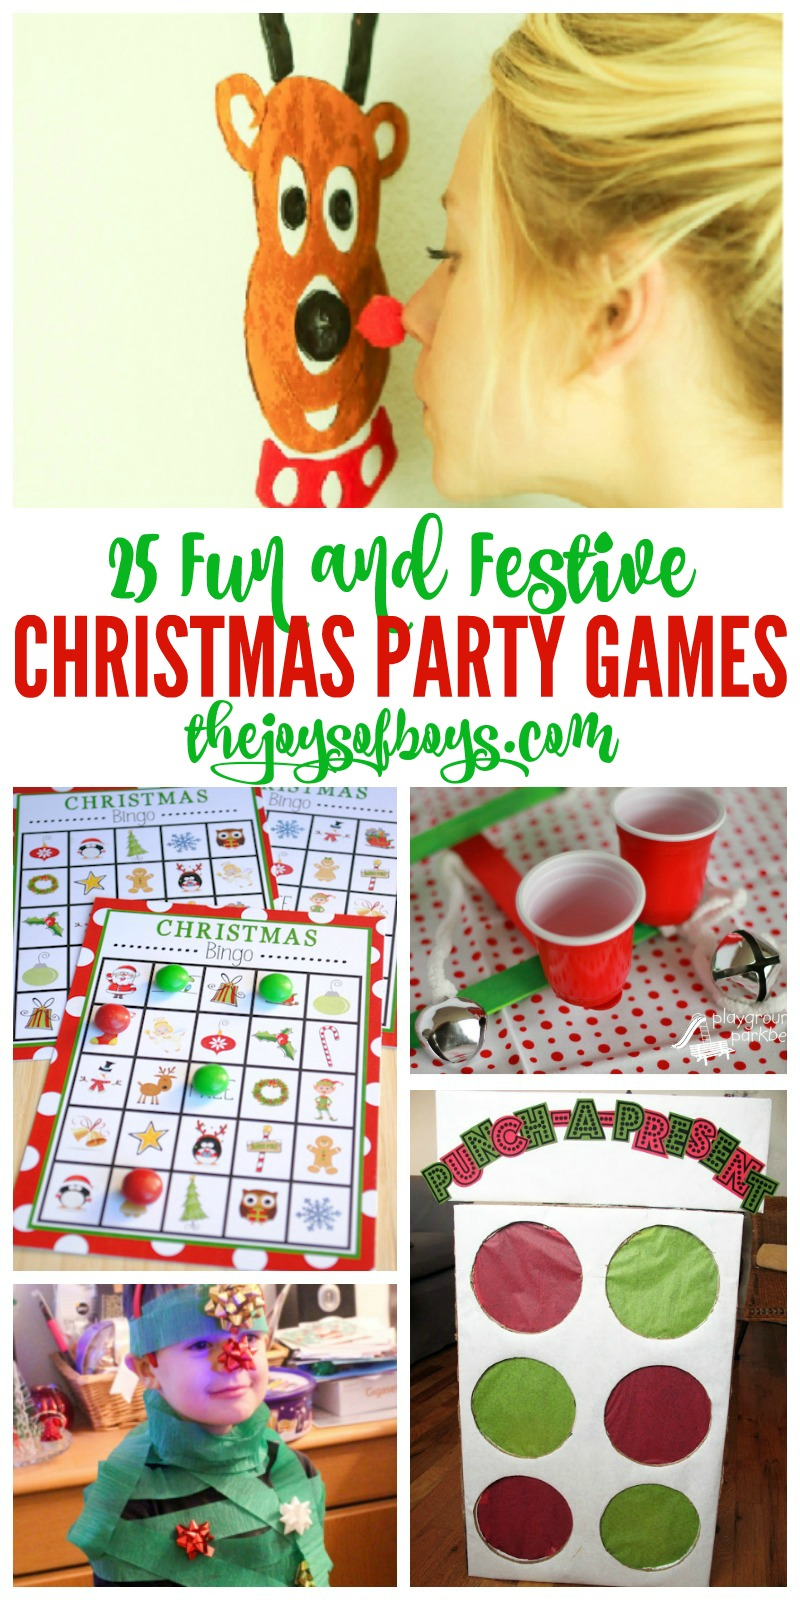 Christmas Party Activity Ideas For Adults Part - 36: Christmas Party Games